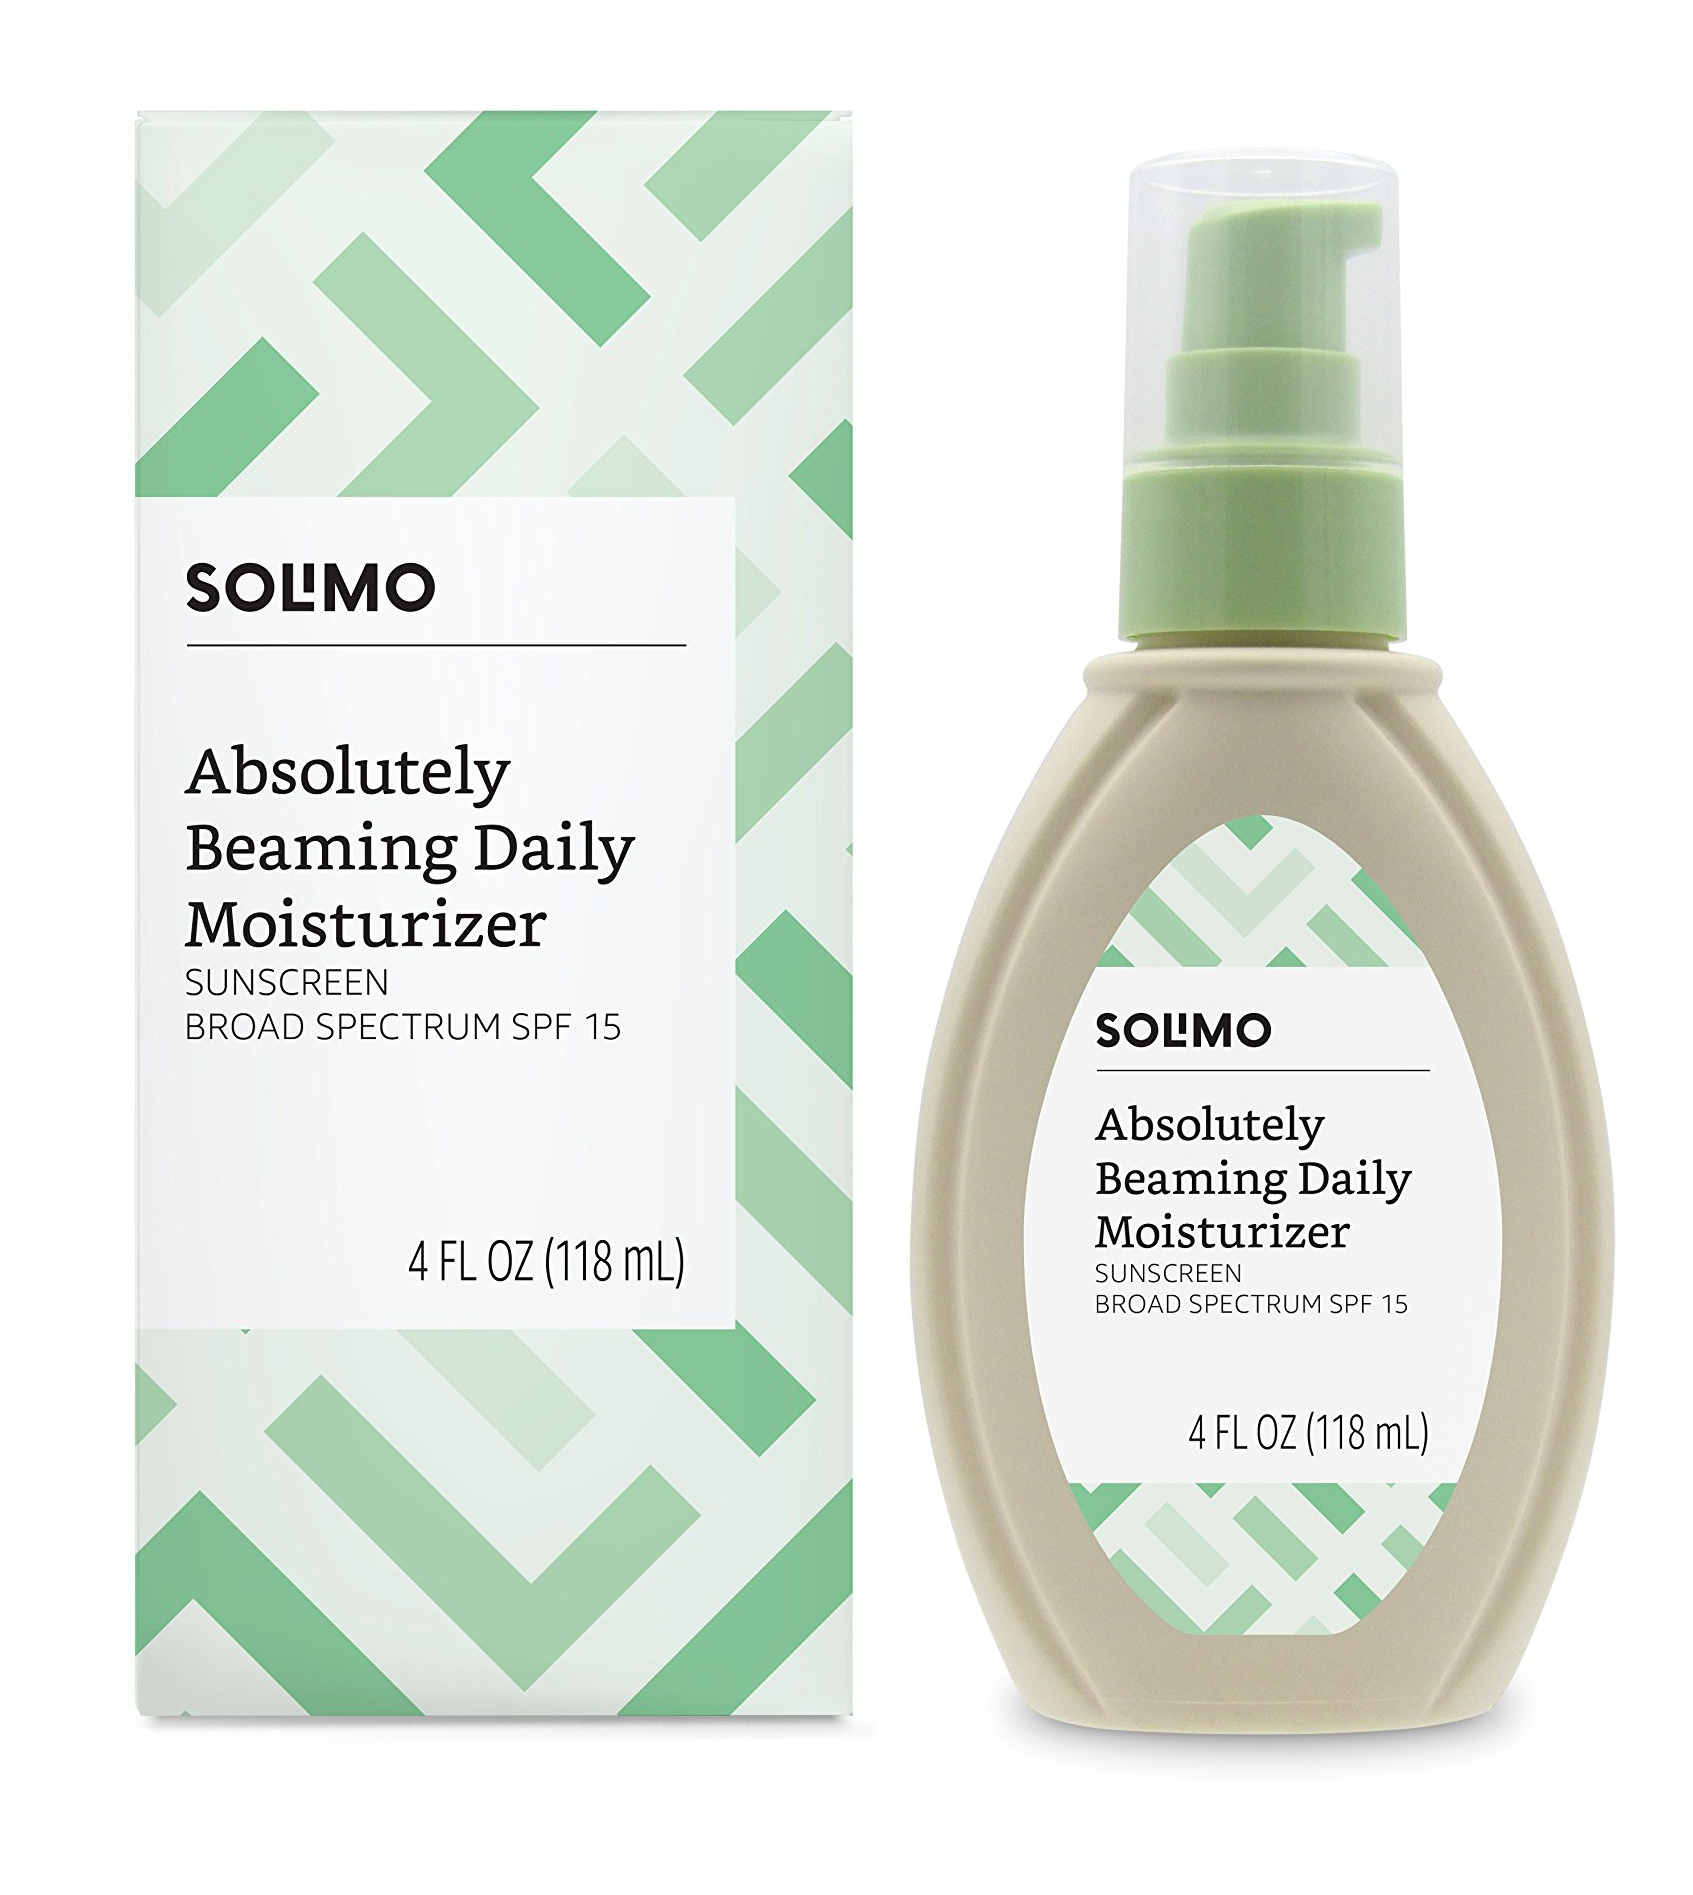 Solimo Absolutely Beaming Daily Moisturizer SunscreenSpf 15